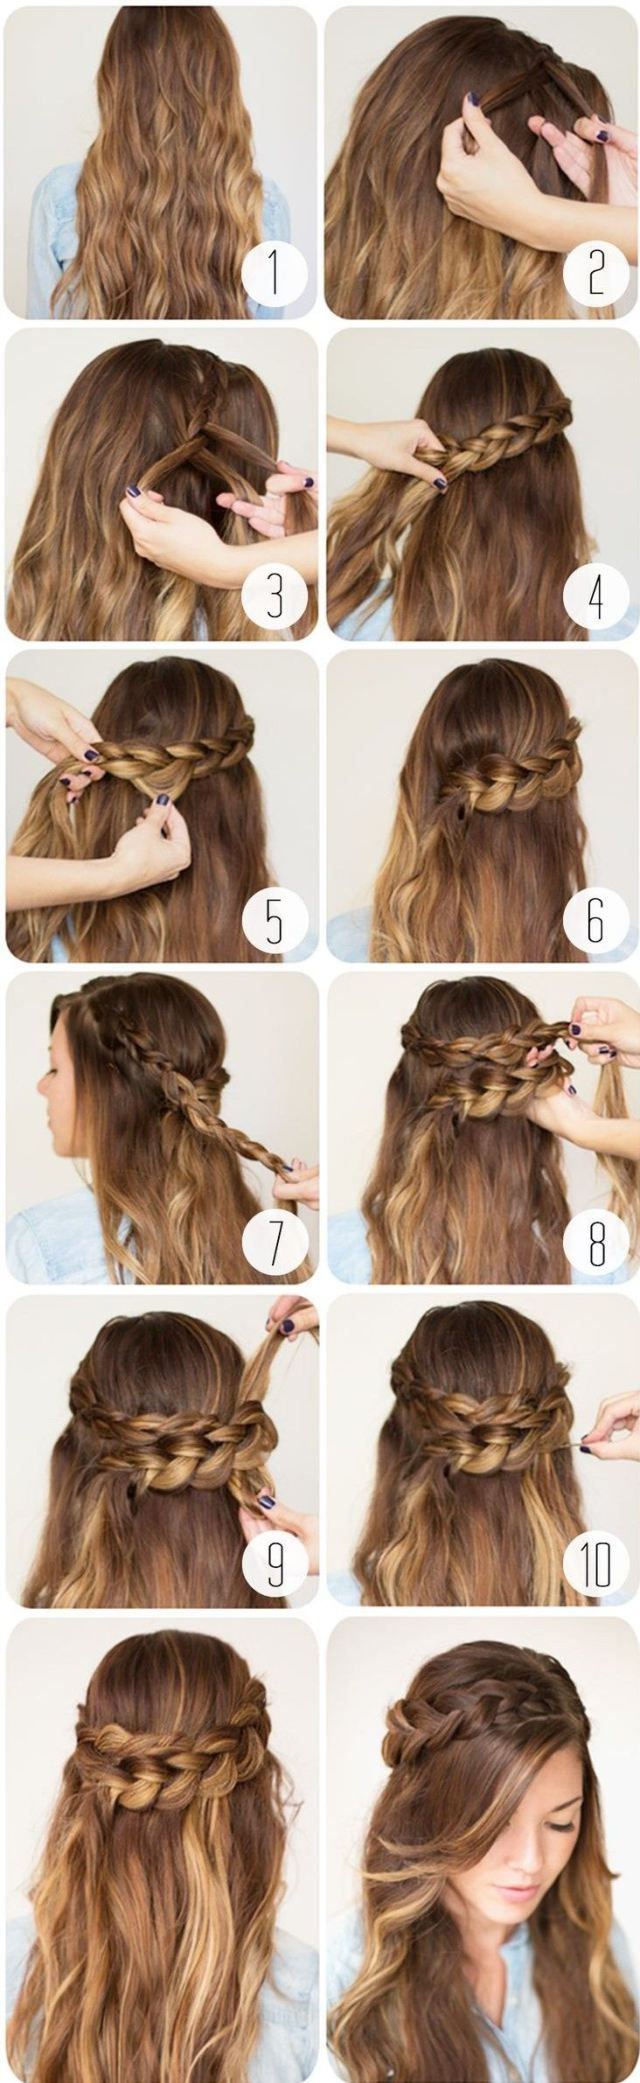 Superb 1000 Ideas About Easy Braided Hairstyles On Pinterest Types Of Short Hairstyles Gunalazisus